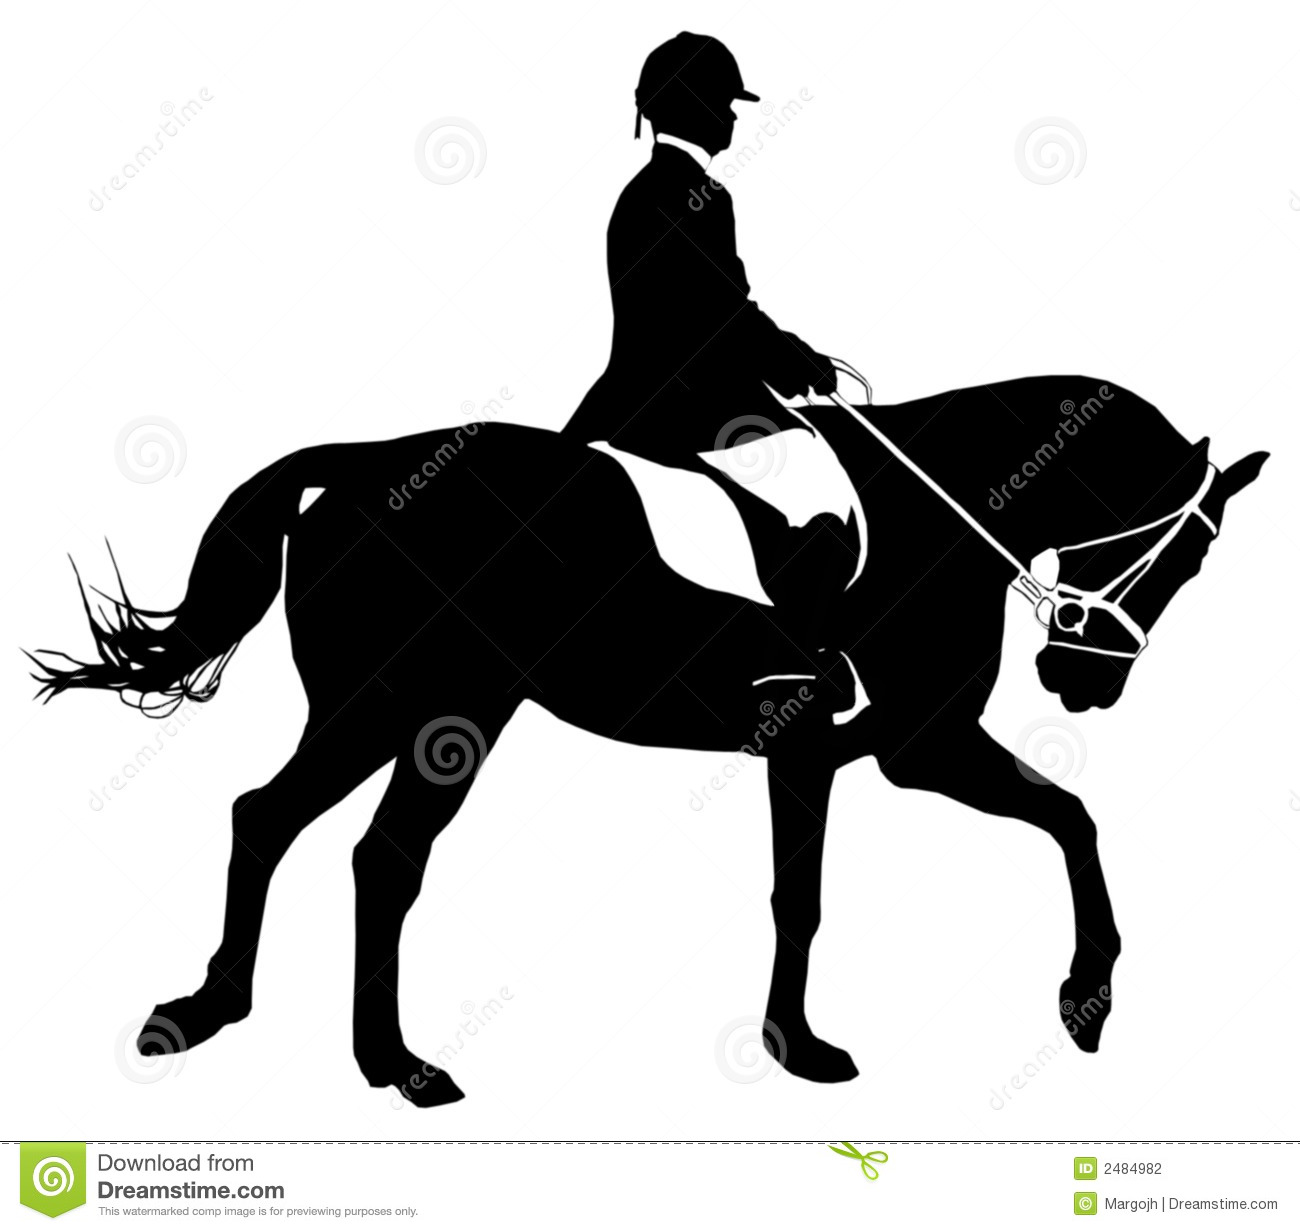 clip art dressage horse - photo #39